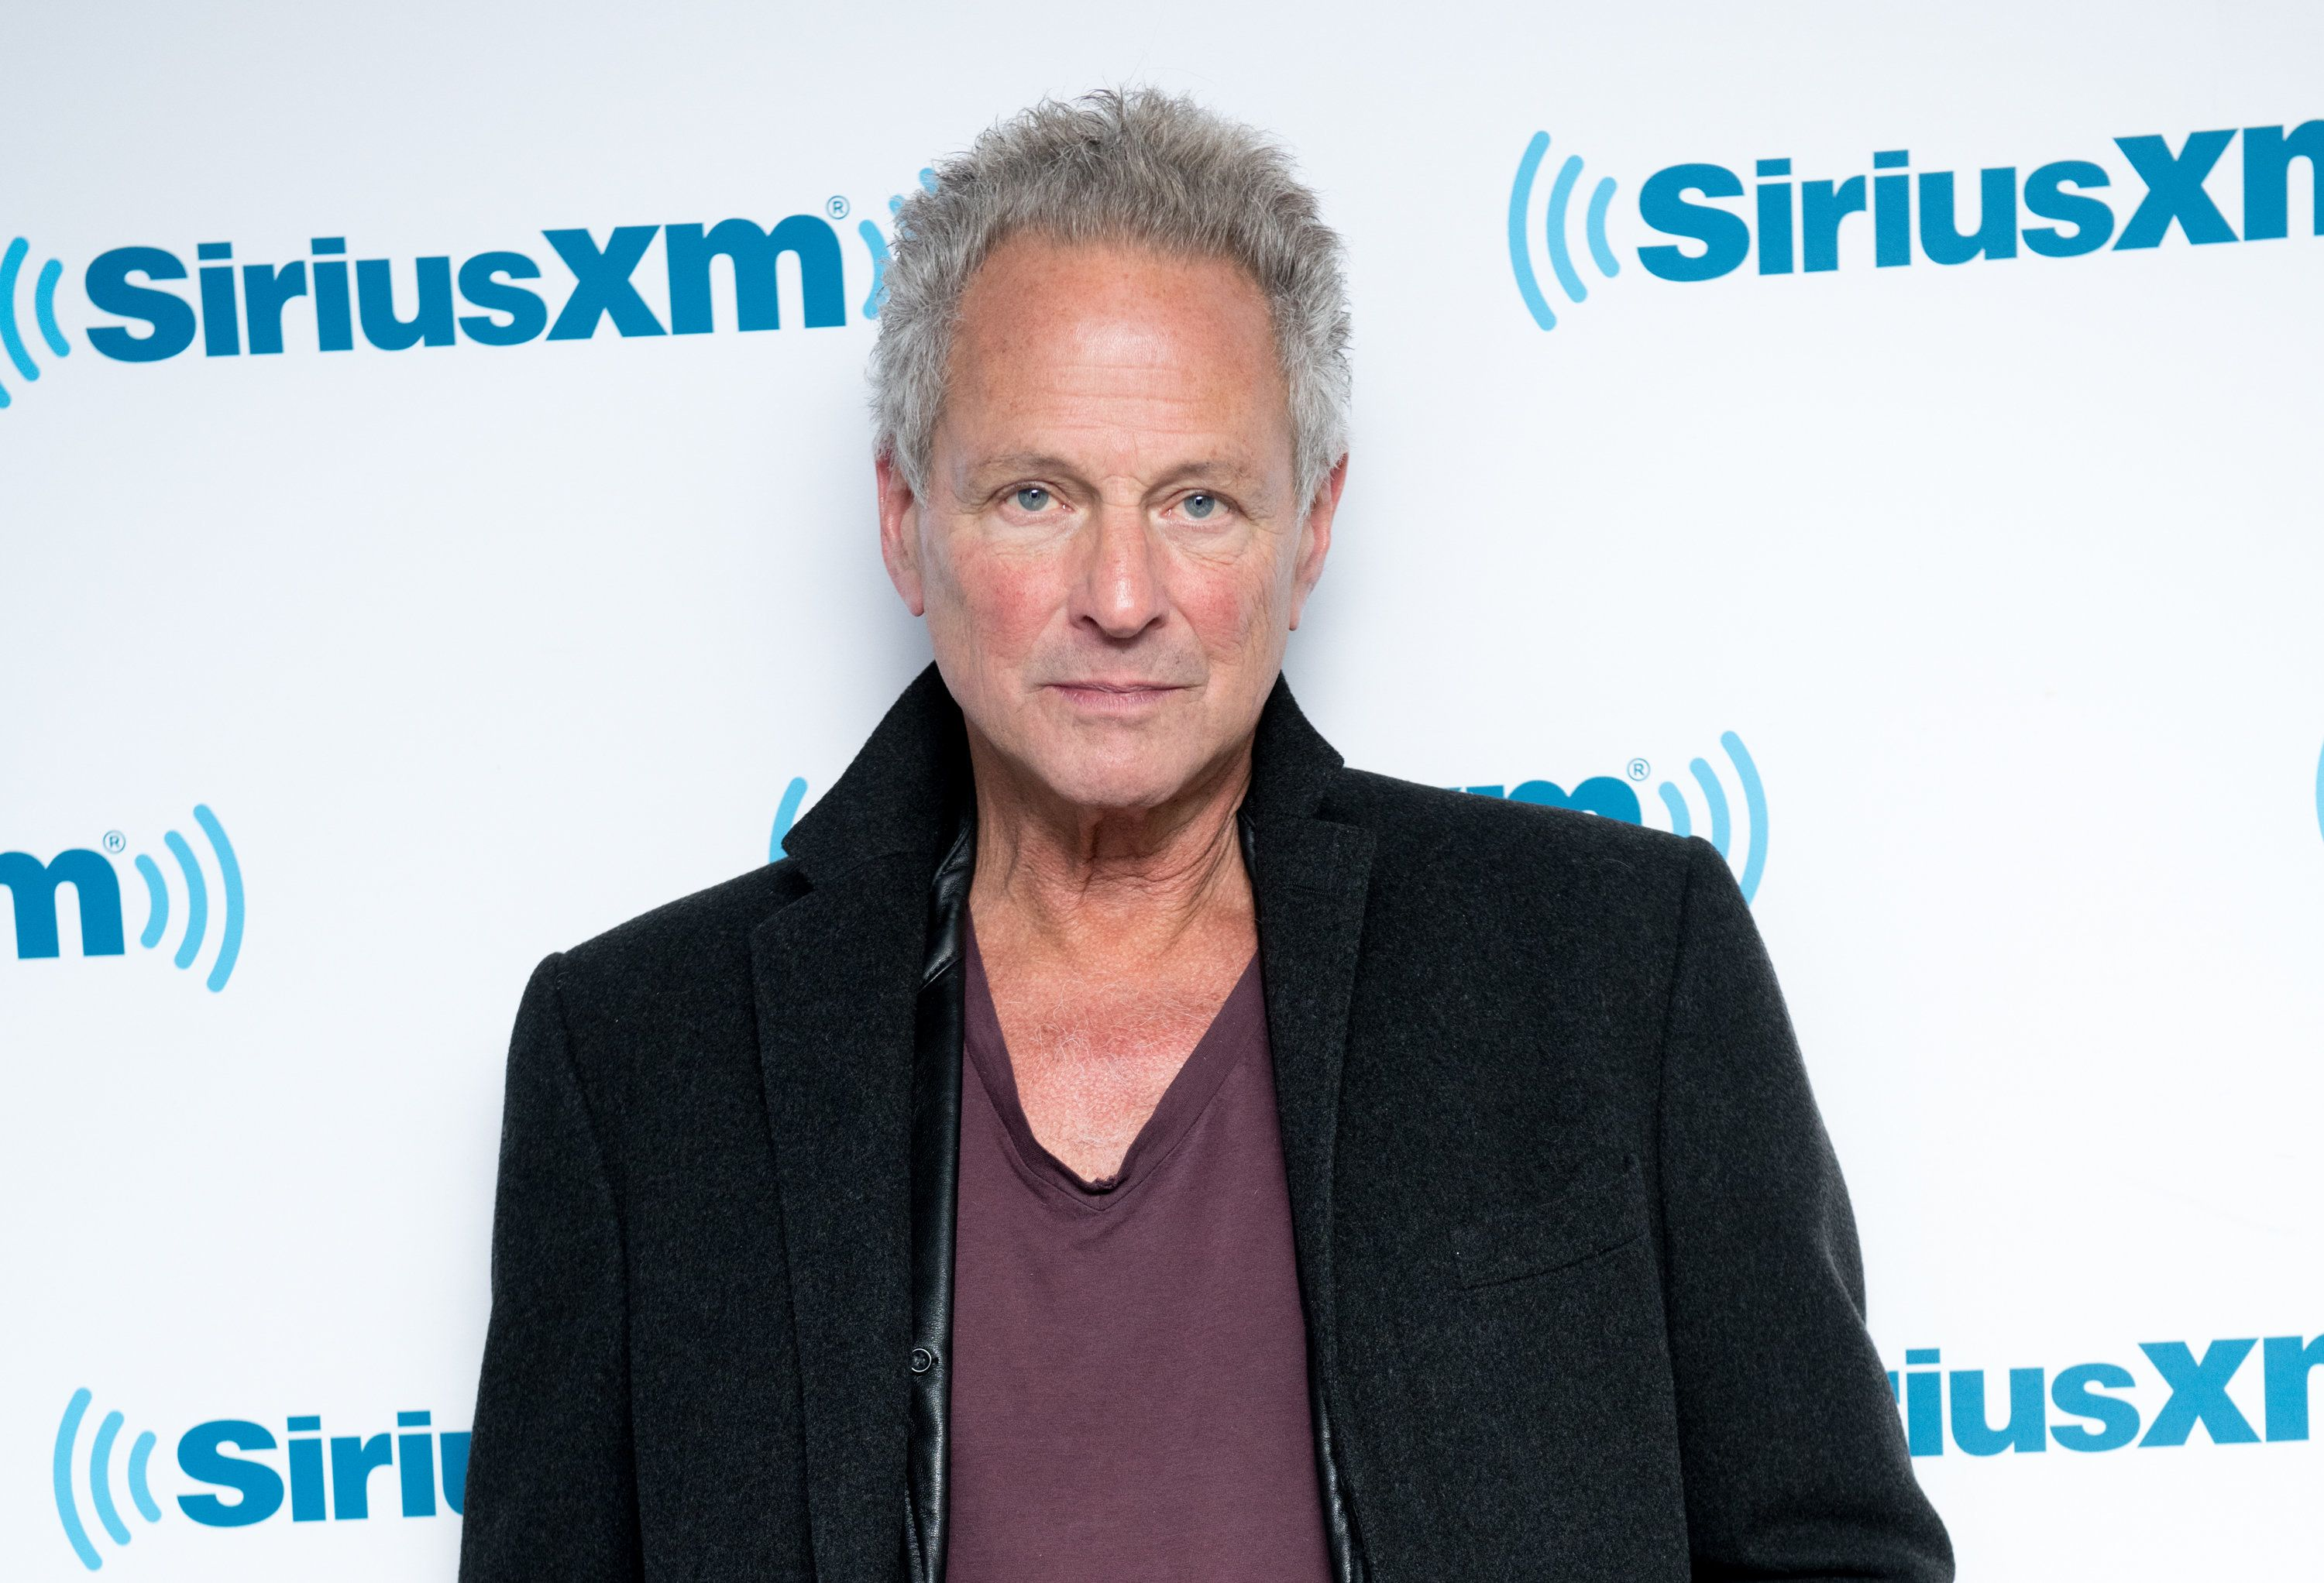 This is the second time Lindsey Buckingham has left Fleetwood